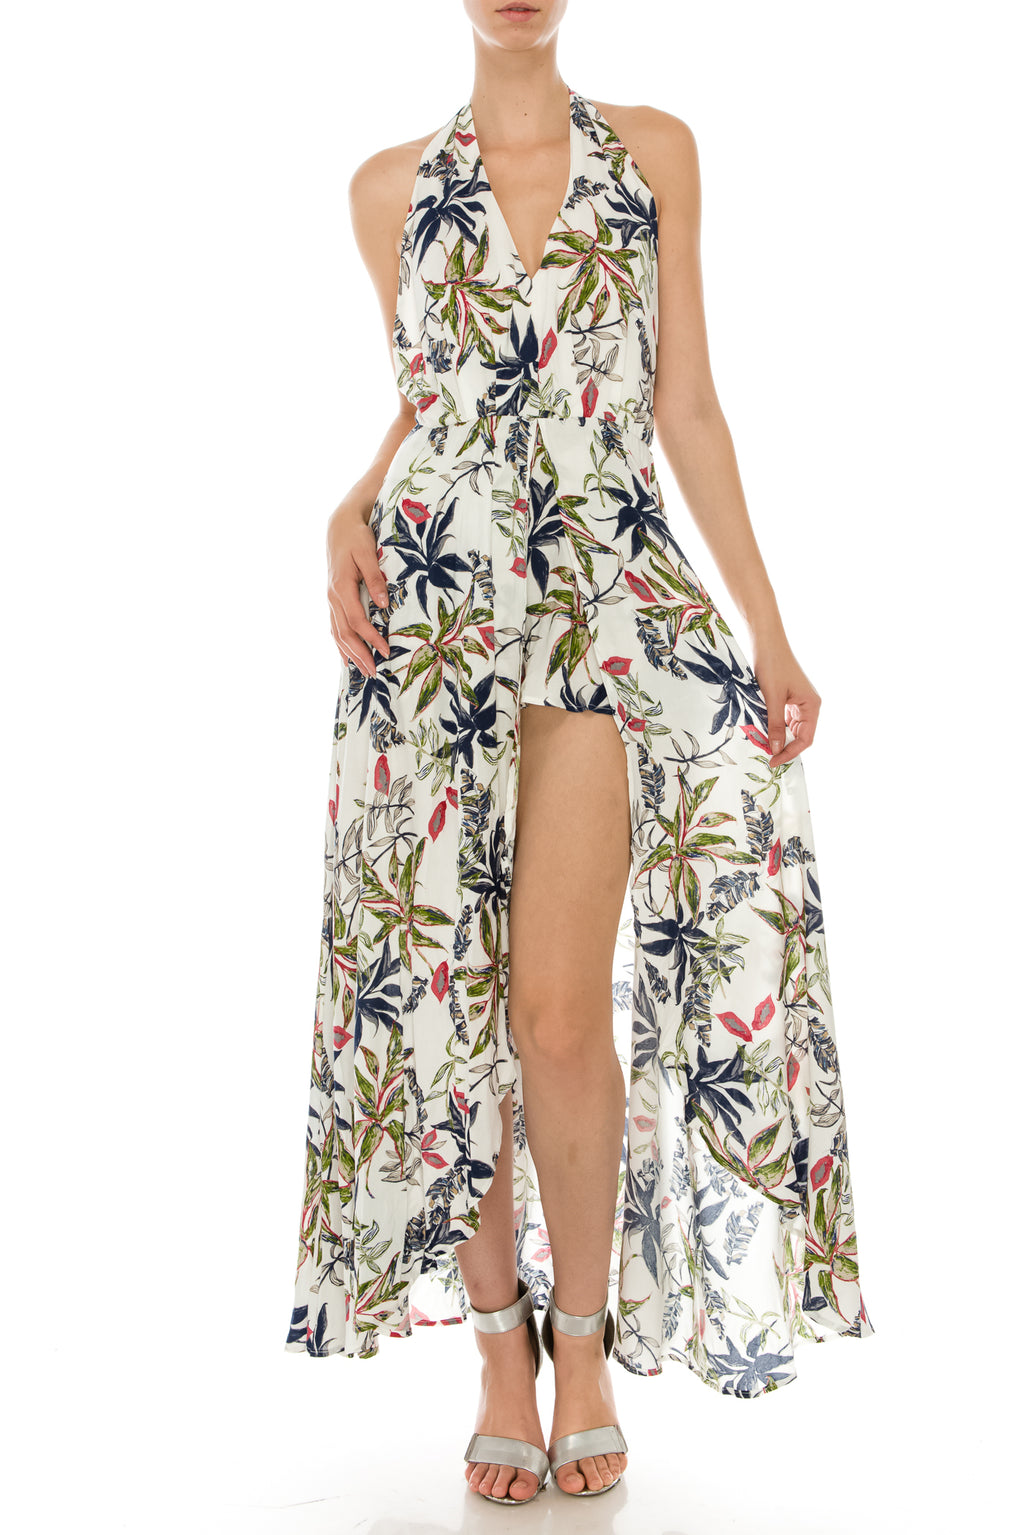 Tropical Print Halter Romper with Maxi Skirt Overlay